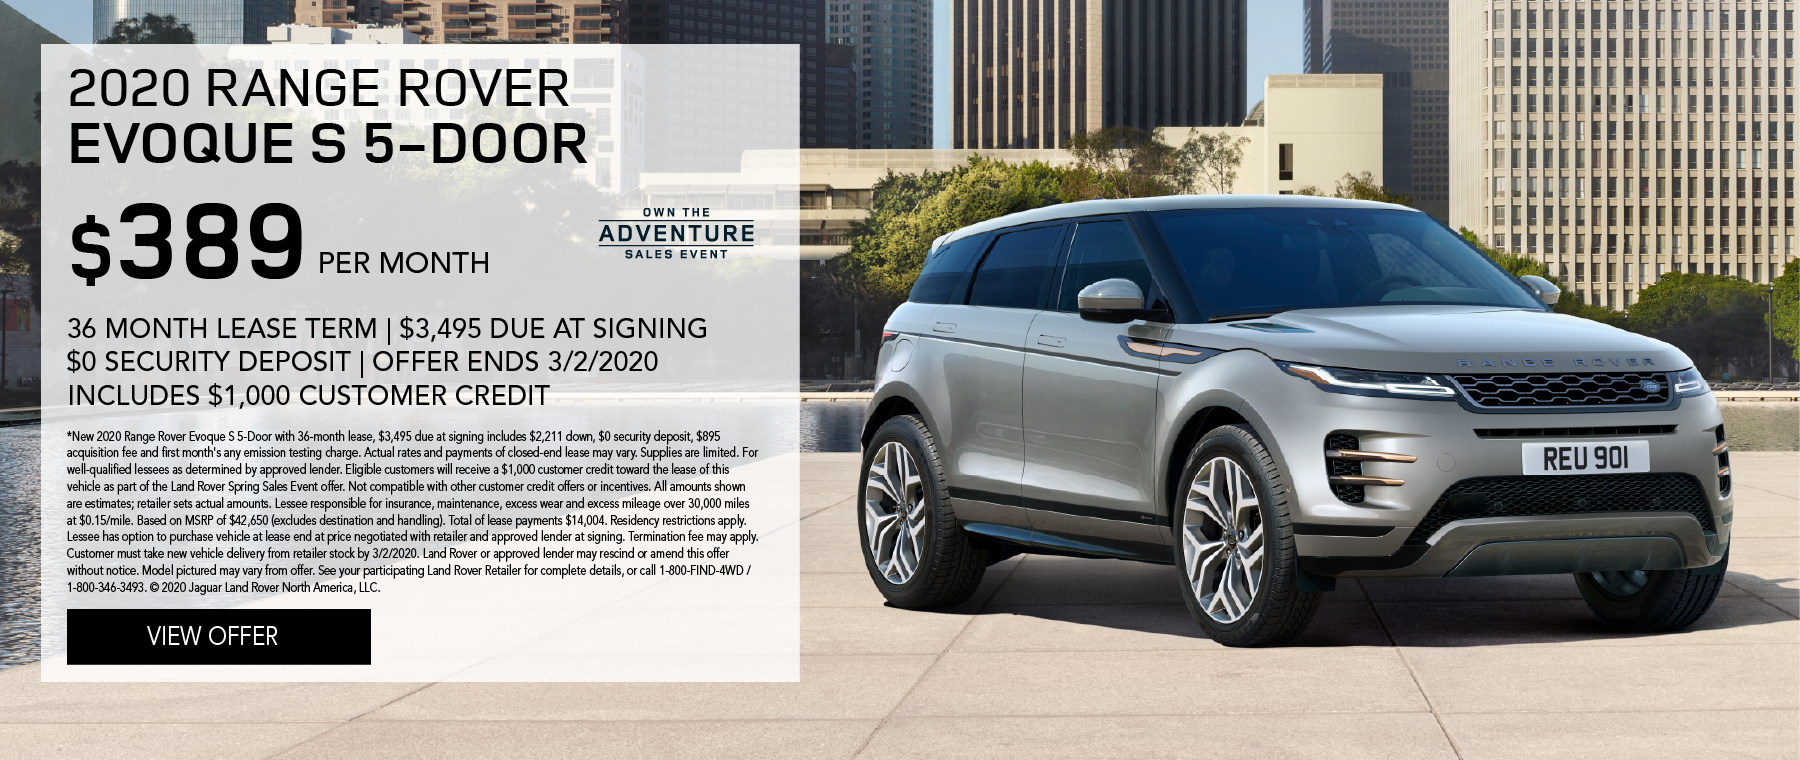 2020 RANGE ROVER EVOQUE S 5-DOOR PARKED ON PAVEMENT NEXT TO WATER FEATURE WITH CITY IN BACKGROUND. $389 PER MONTH. 36 MONTH LEASE TERM. $3,495 CASH DUE AT SIGNING. INCLUDES $1,000 CUSTOMER CREDIT. $0 SECURITY DEPOSIT. 10,000 MILES PER YEAR. OFFER ENDS 3/2/2020. OWN THE ADVENTURE SALES EVENT.